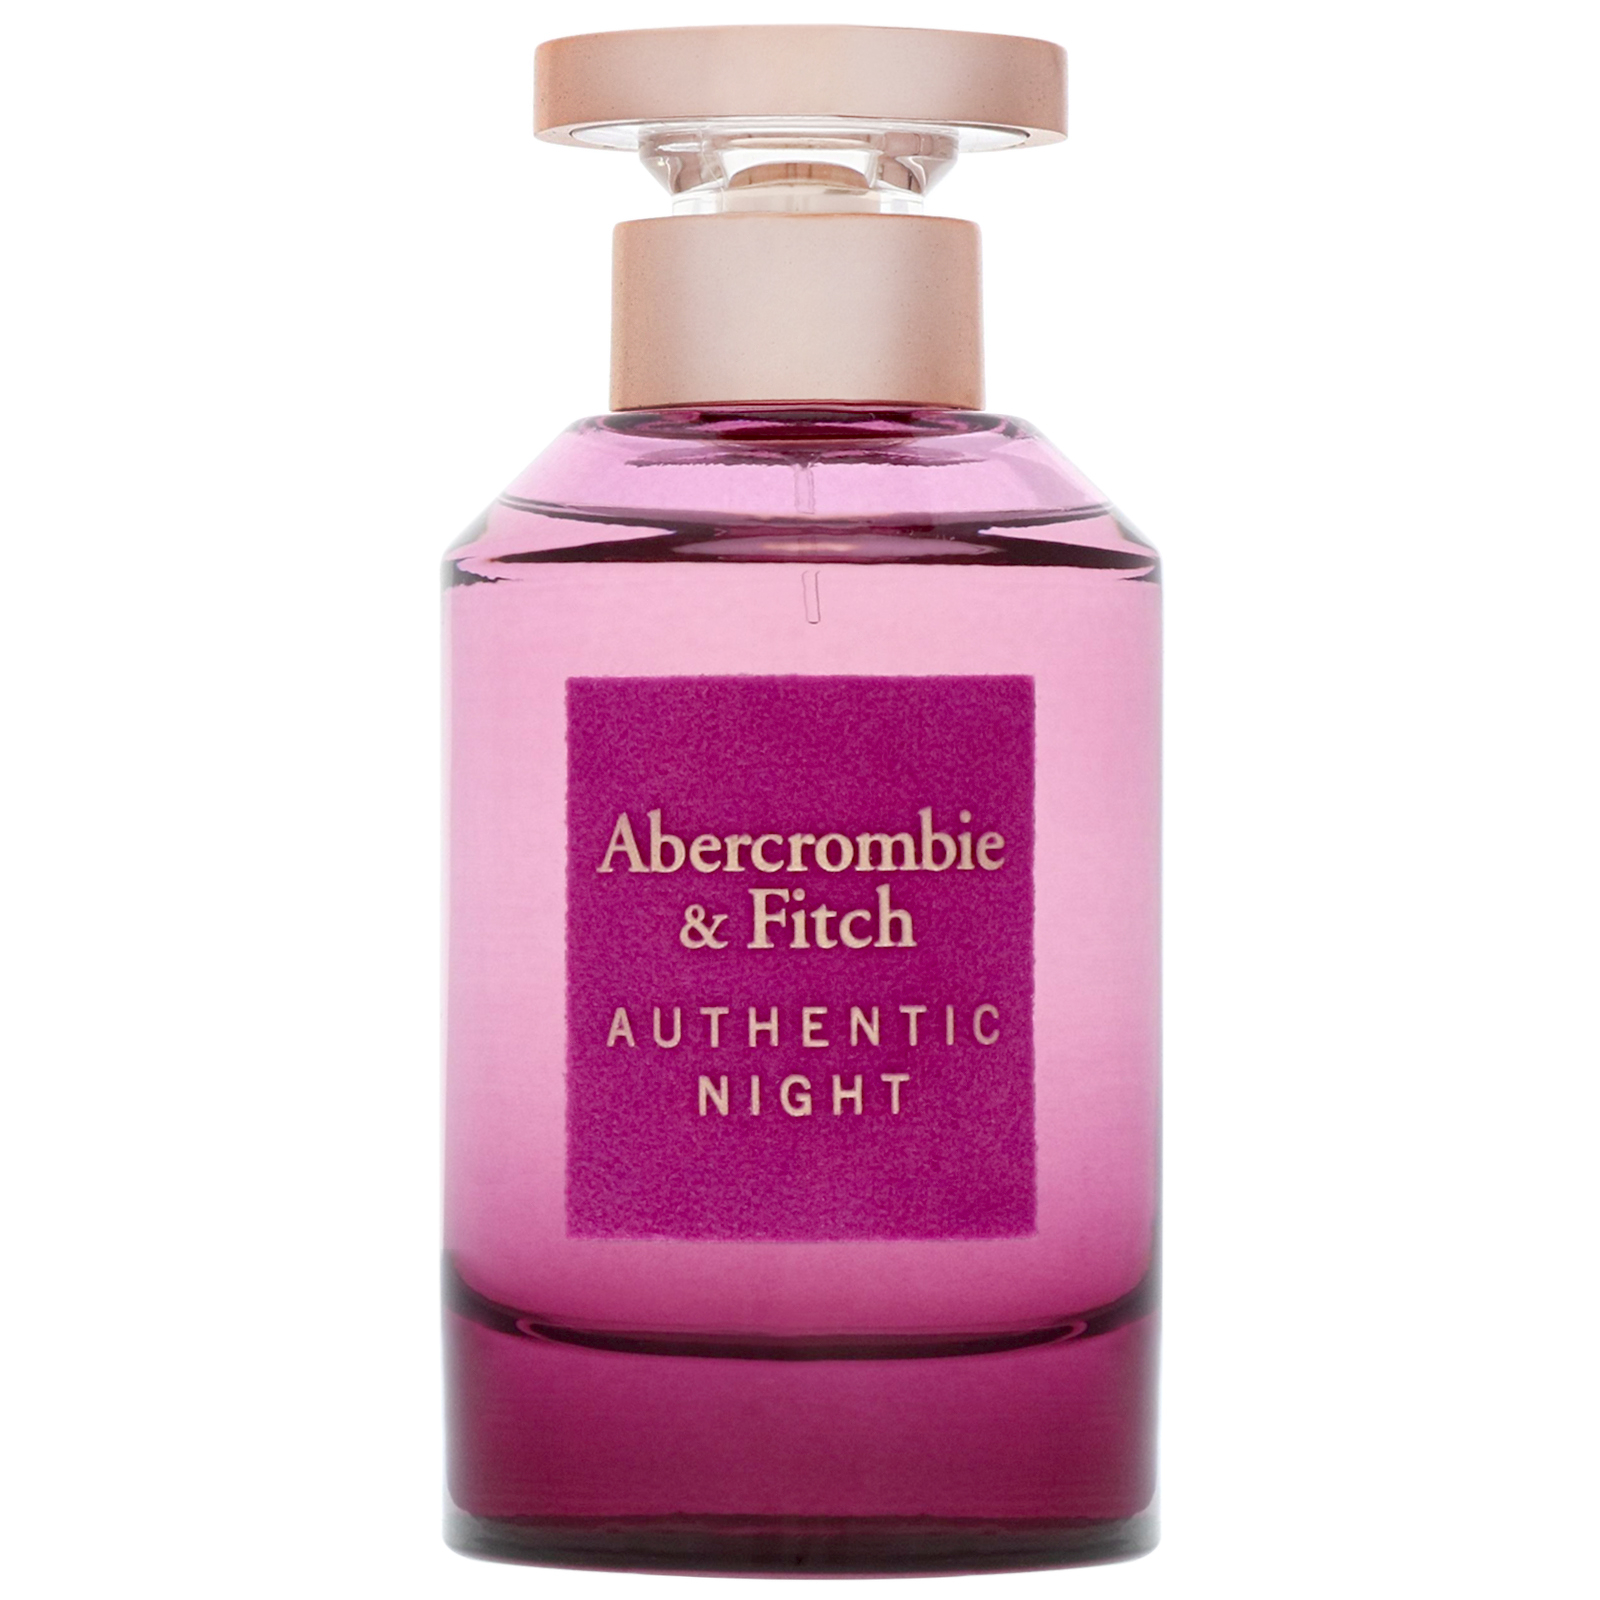 Abercrombie & Fitch Authentic Night Woman  Eau de Parfum Spray 100ml